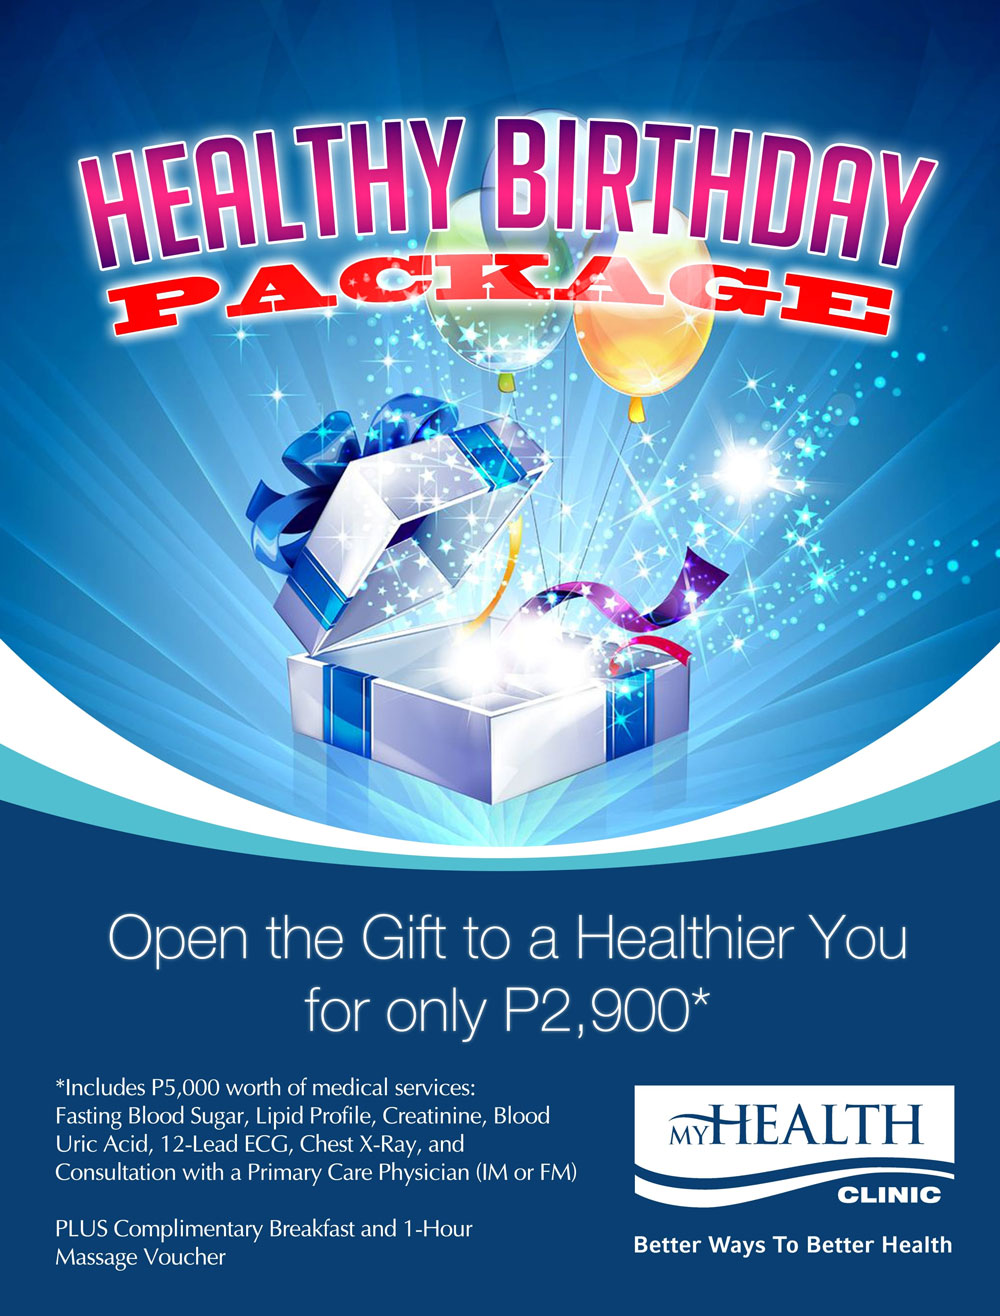 Annual Check-Up Package